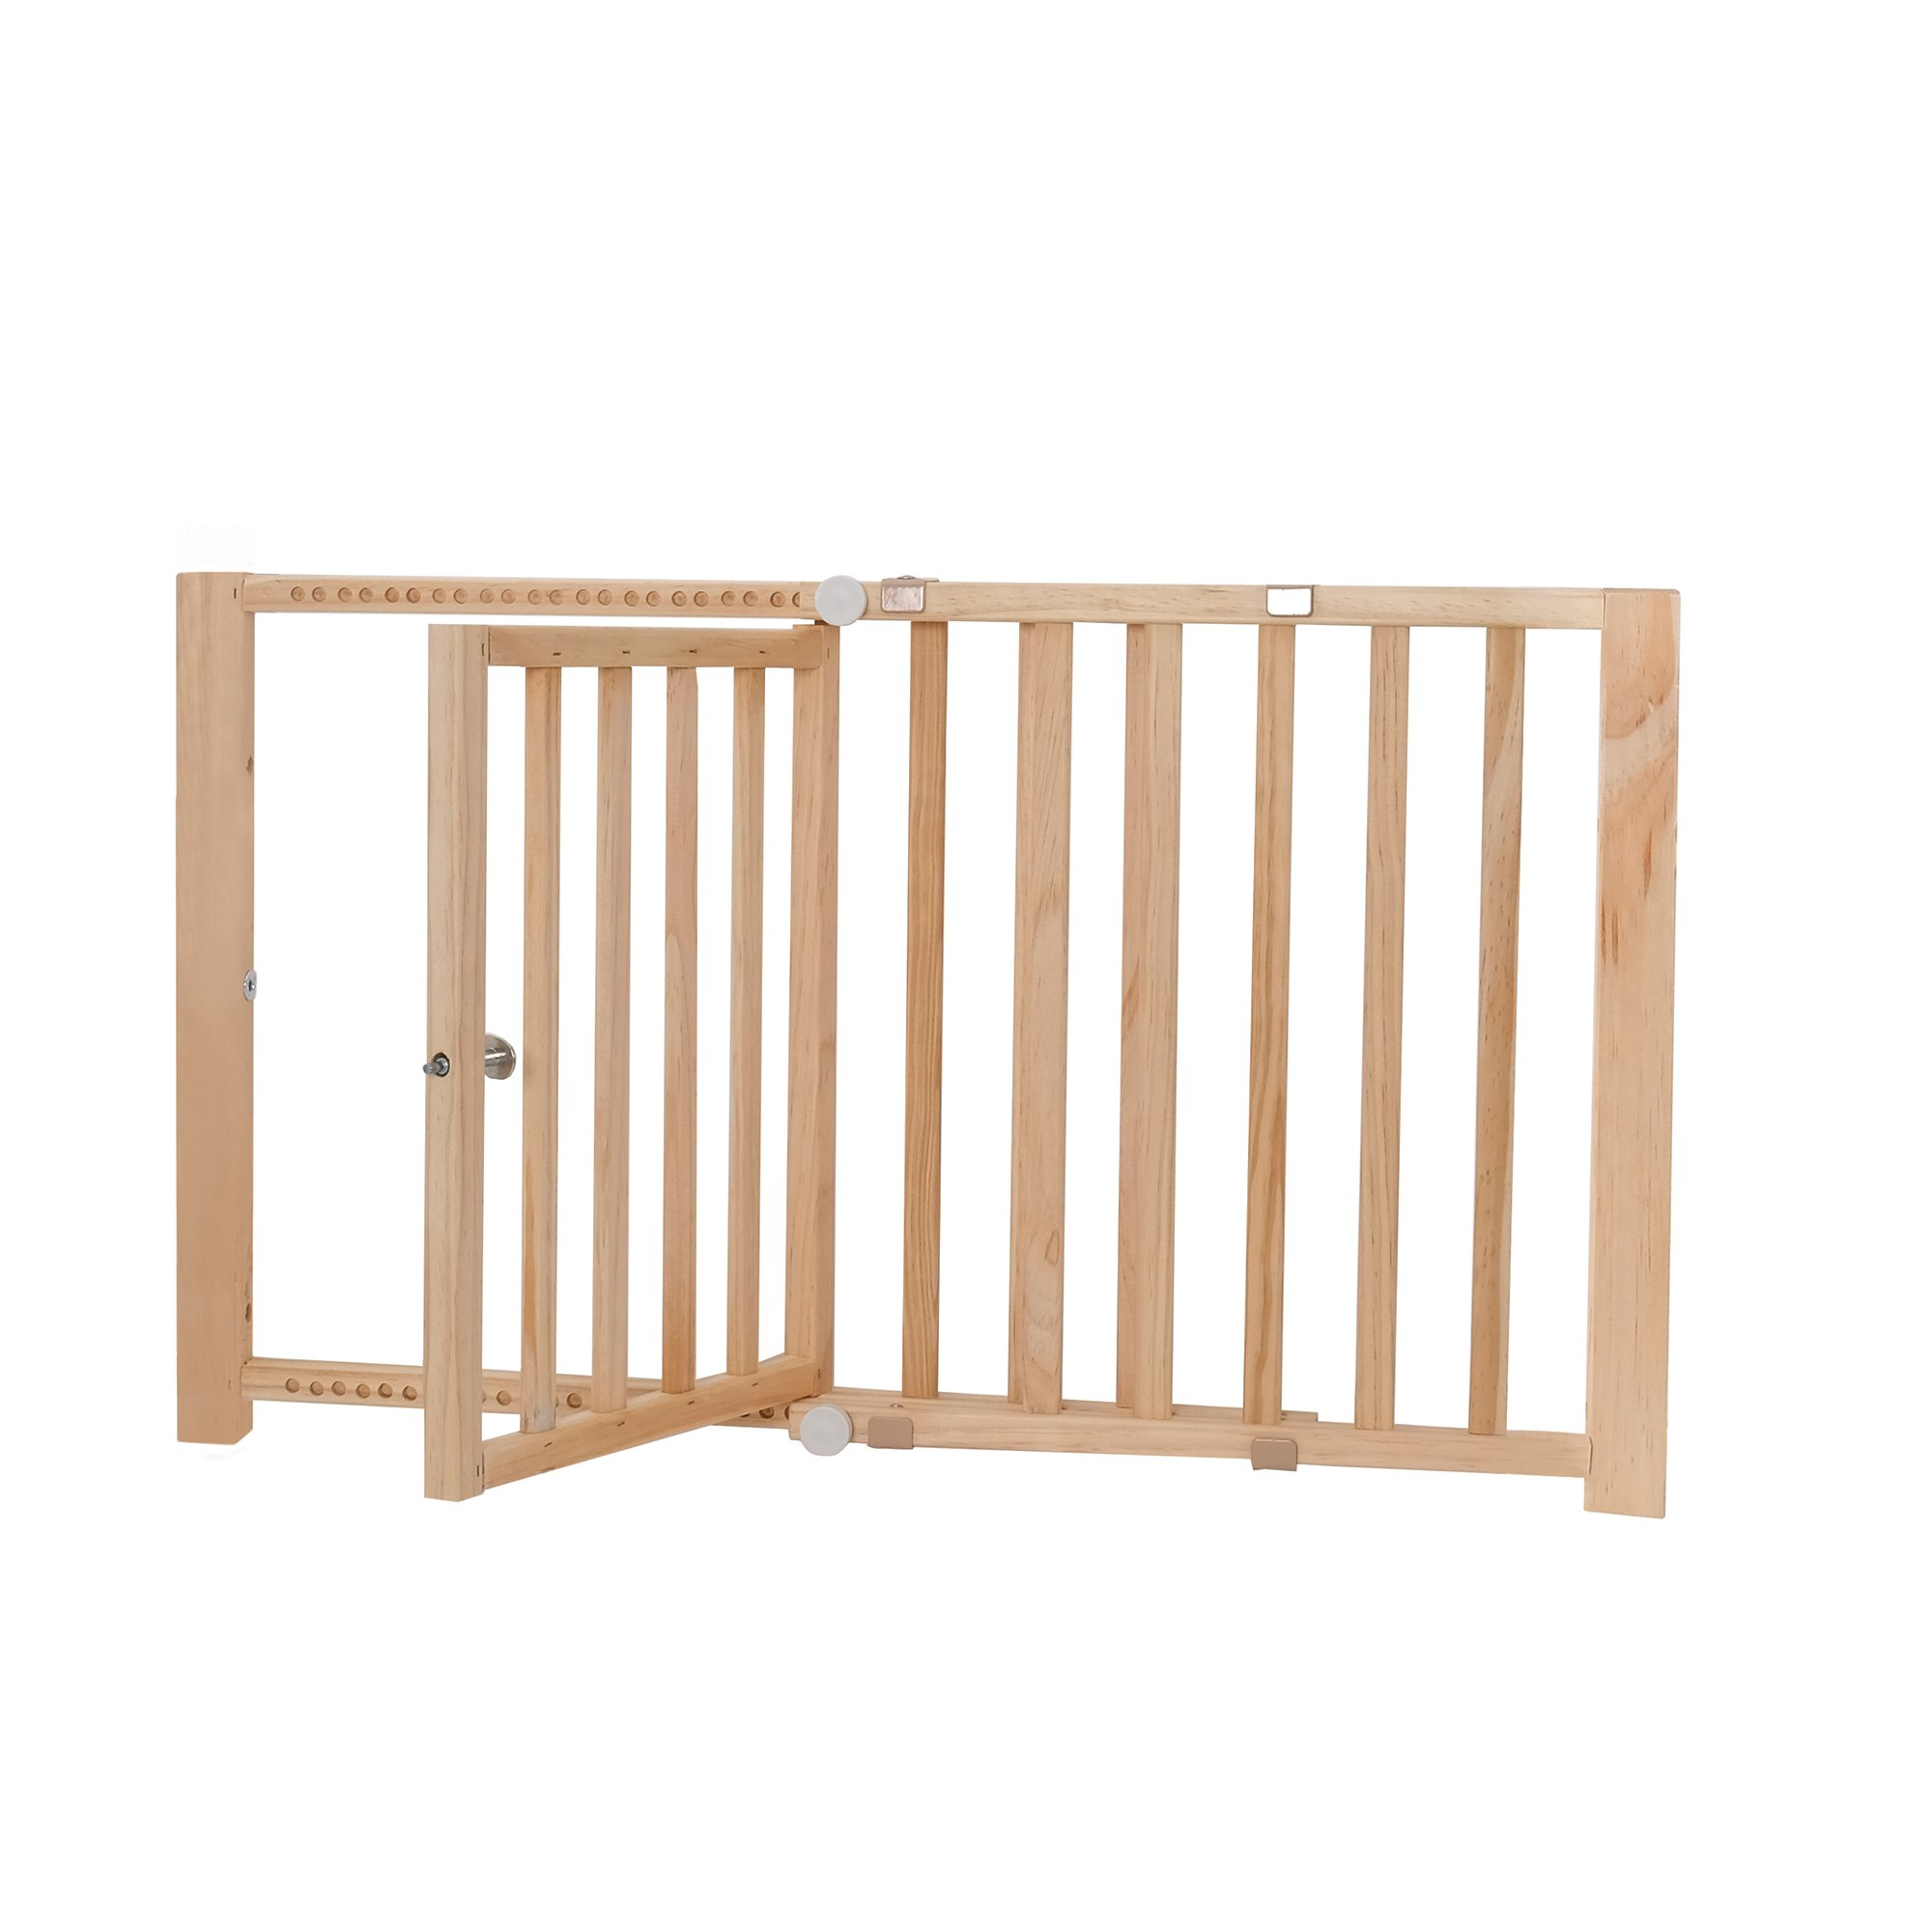 Dogit 70621 Pet Safety Gate, 28-44 W x 18'' H by Dogit